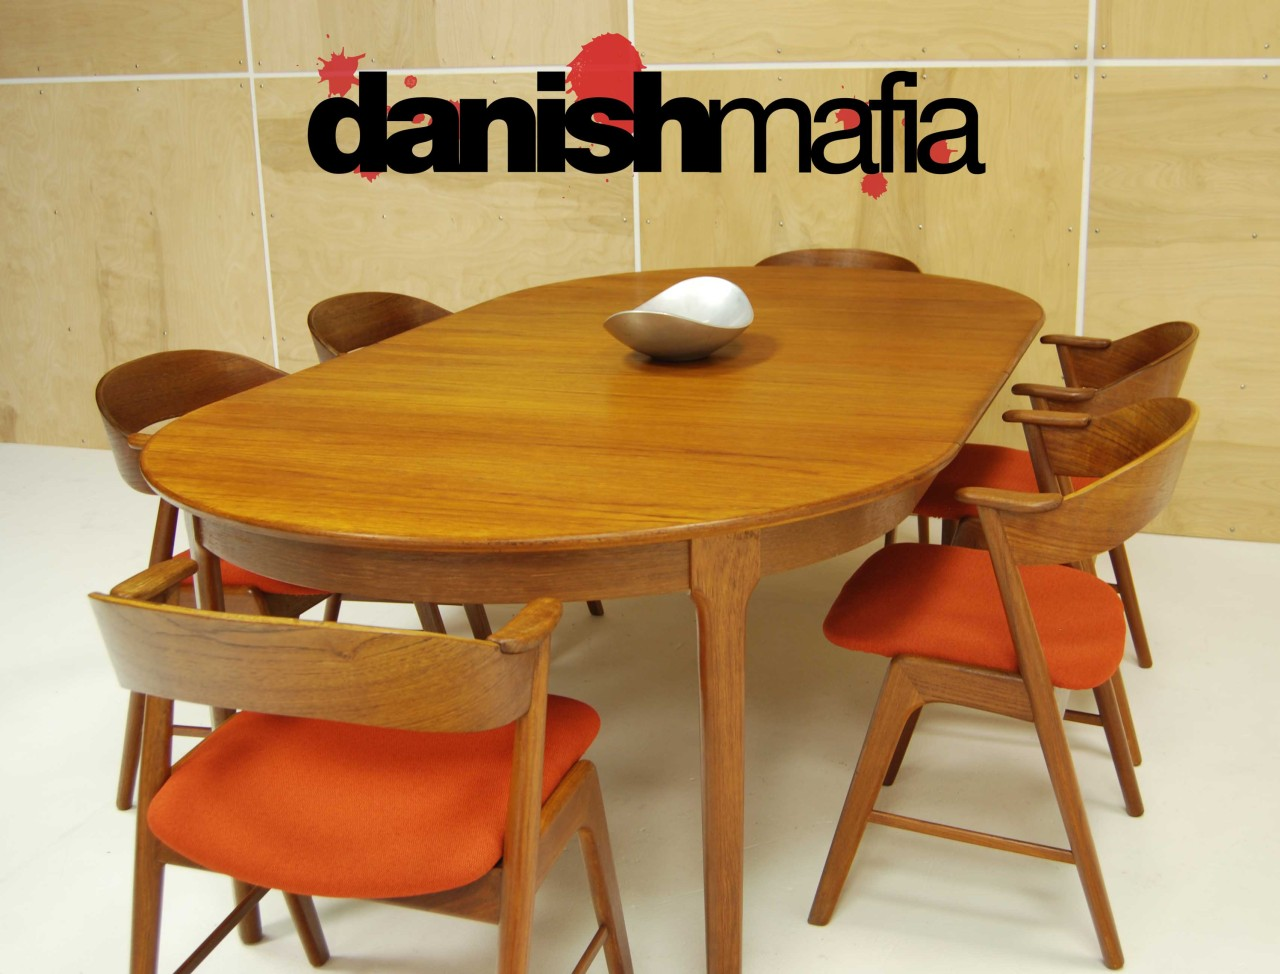 Attractive MID CENTURY DANISH MODERN OVAL TEAK DINING TABLE W 2 LEAVES